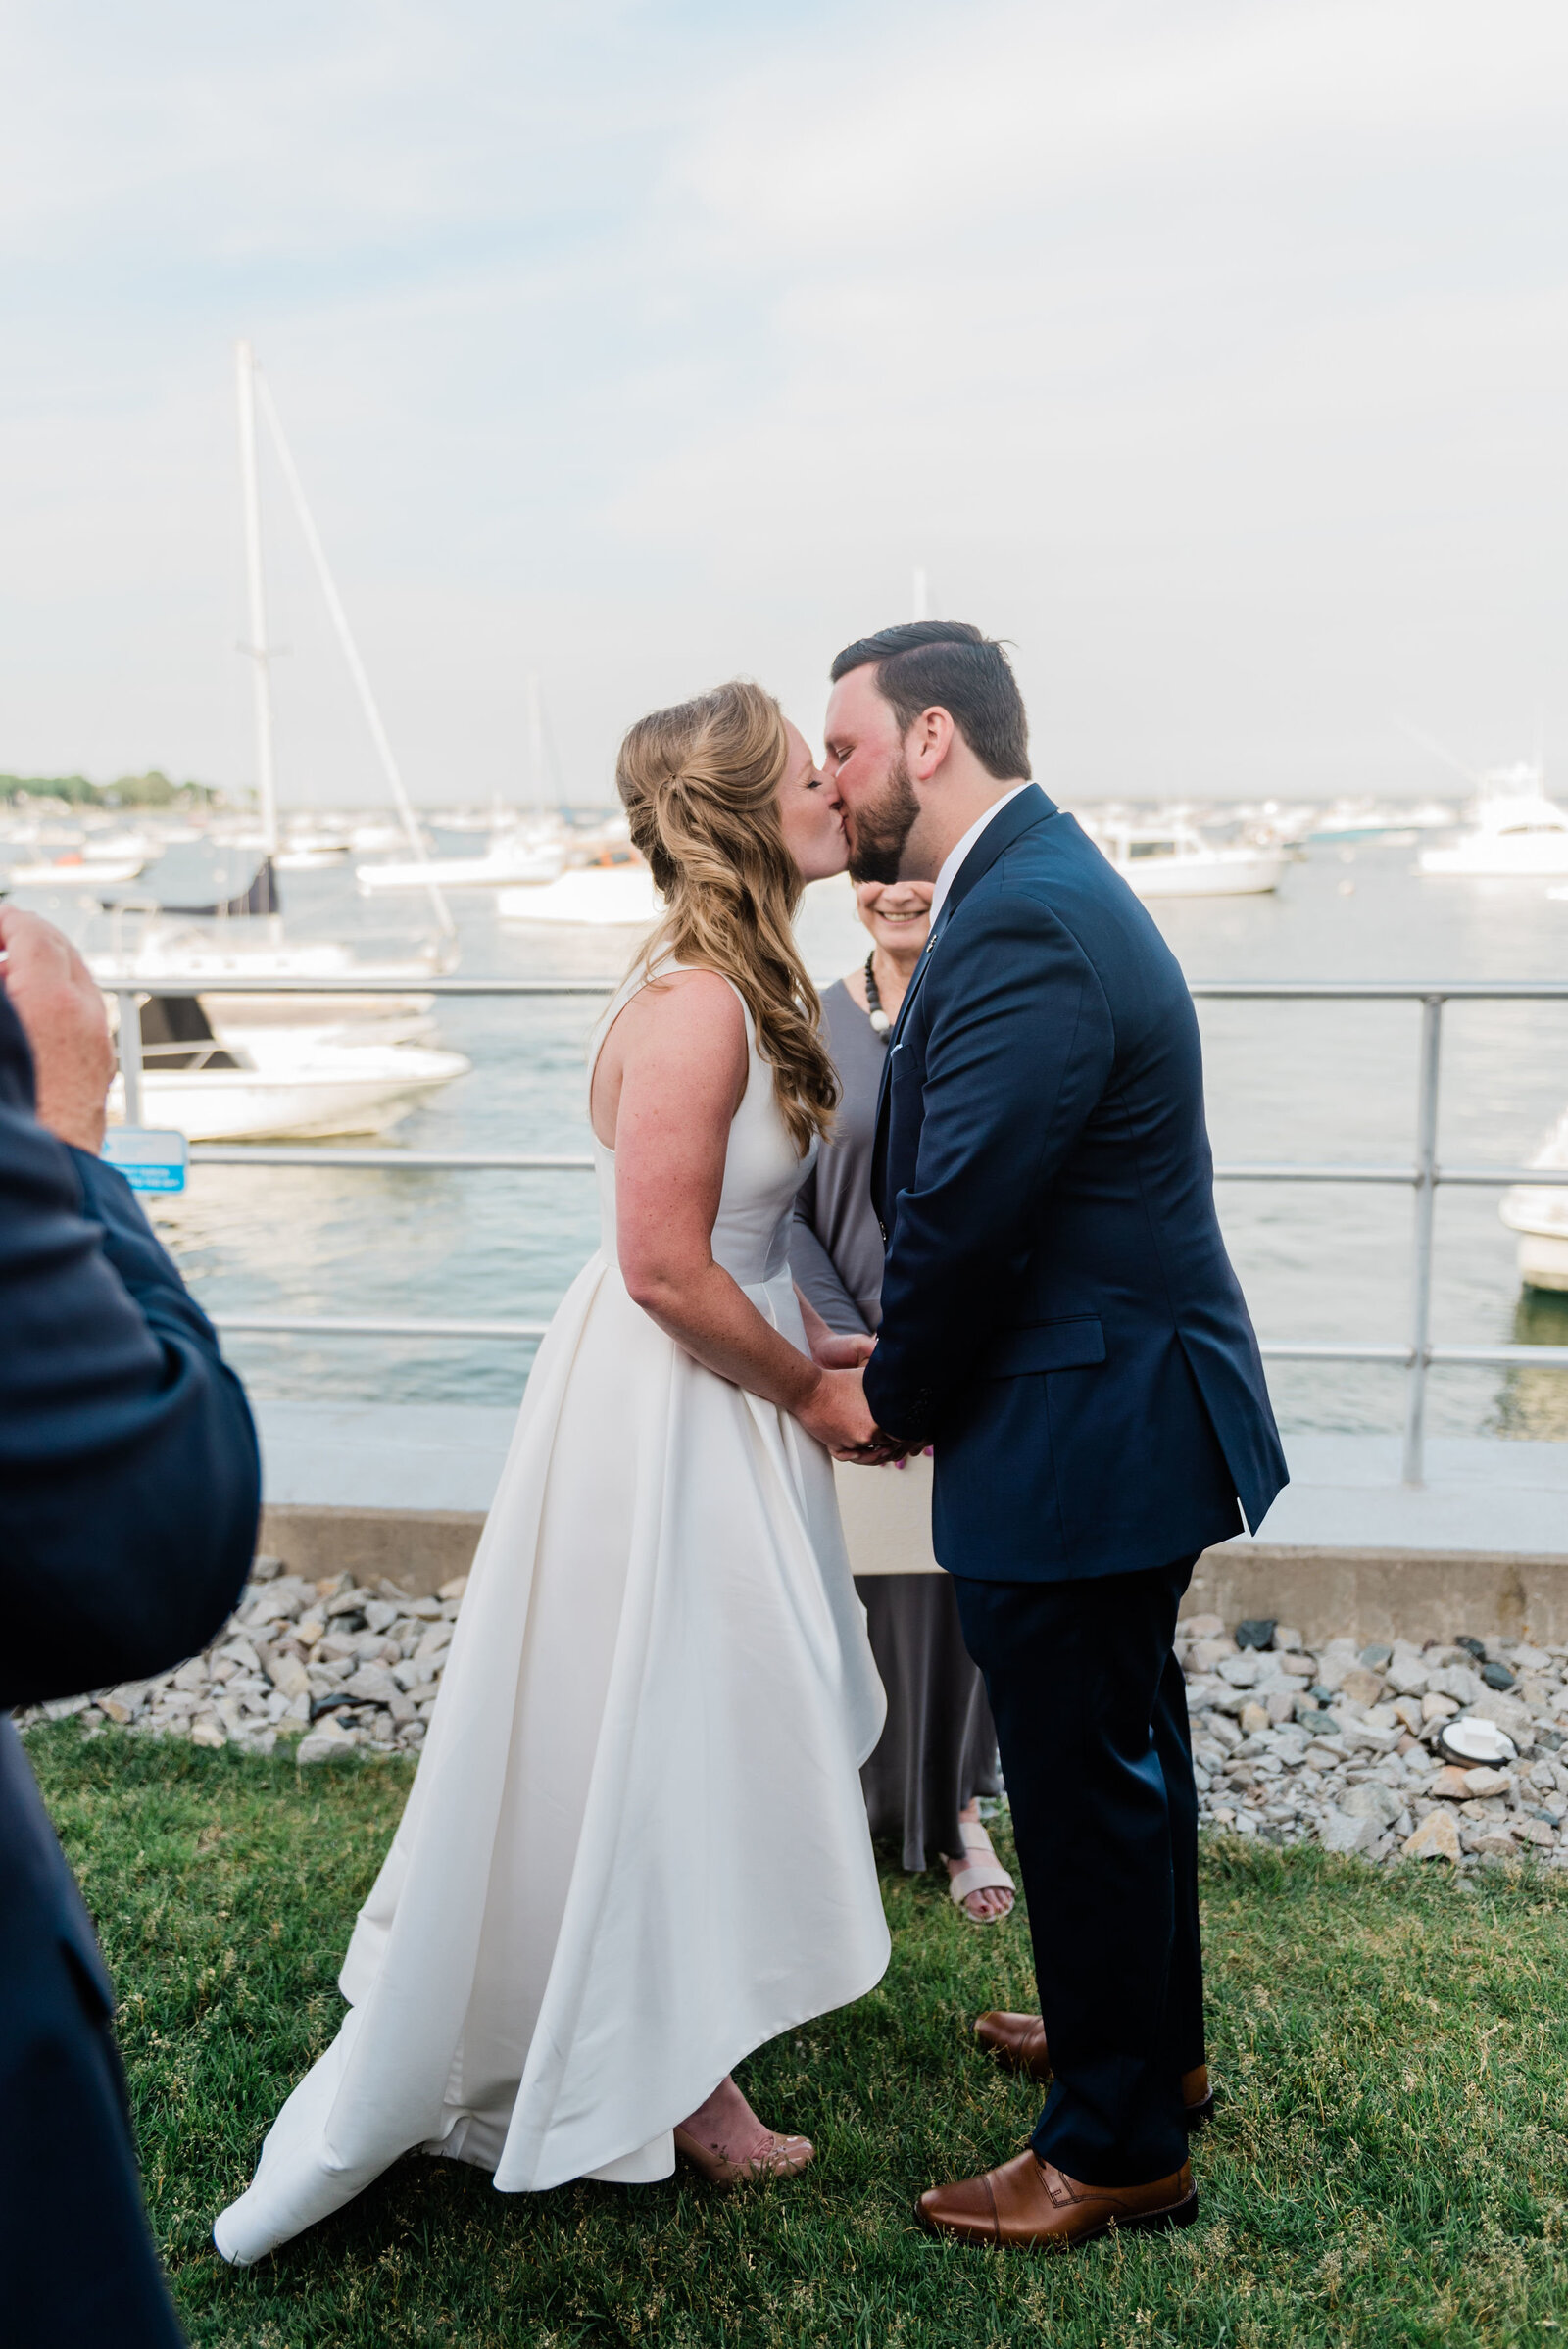 couple shares their first kiss after their waterfront wedding ceremony at Duxbury Bay Maritime School